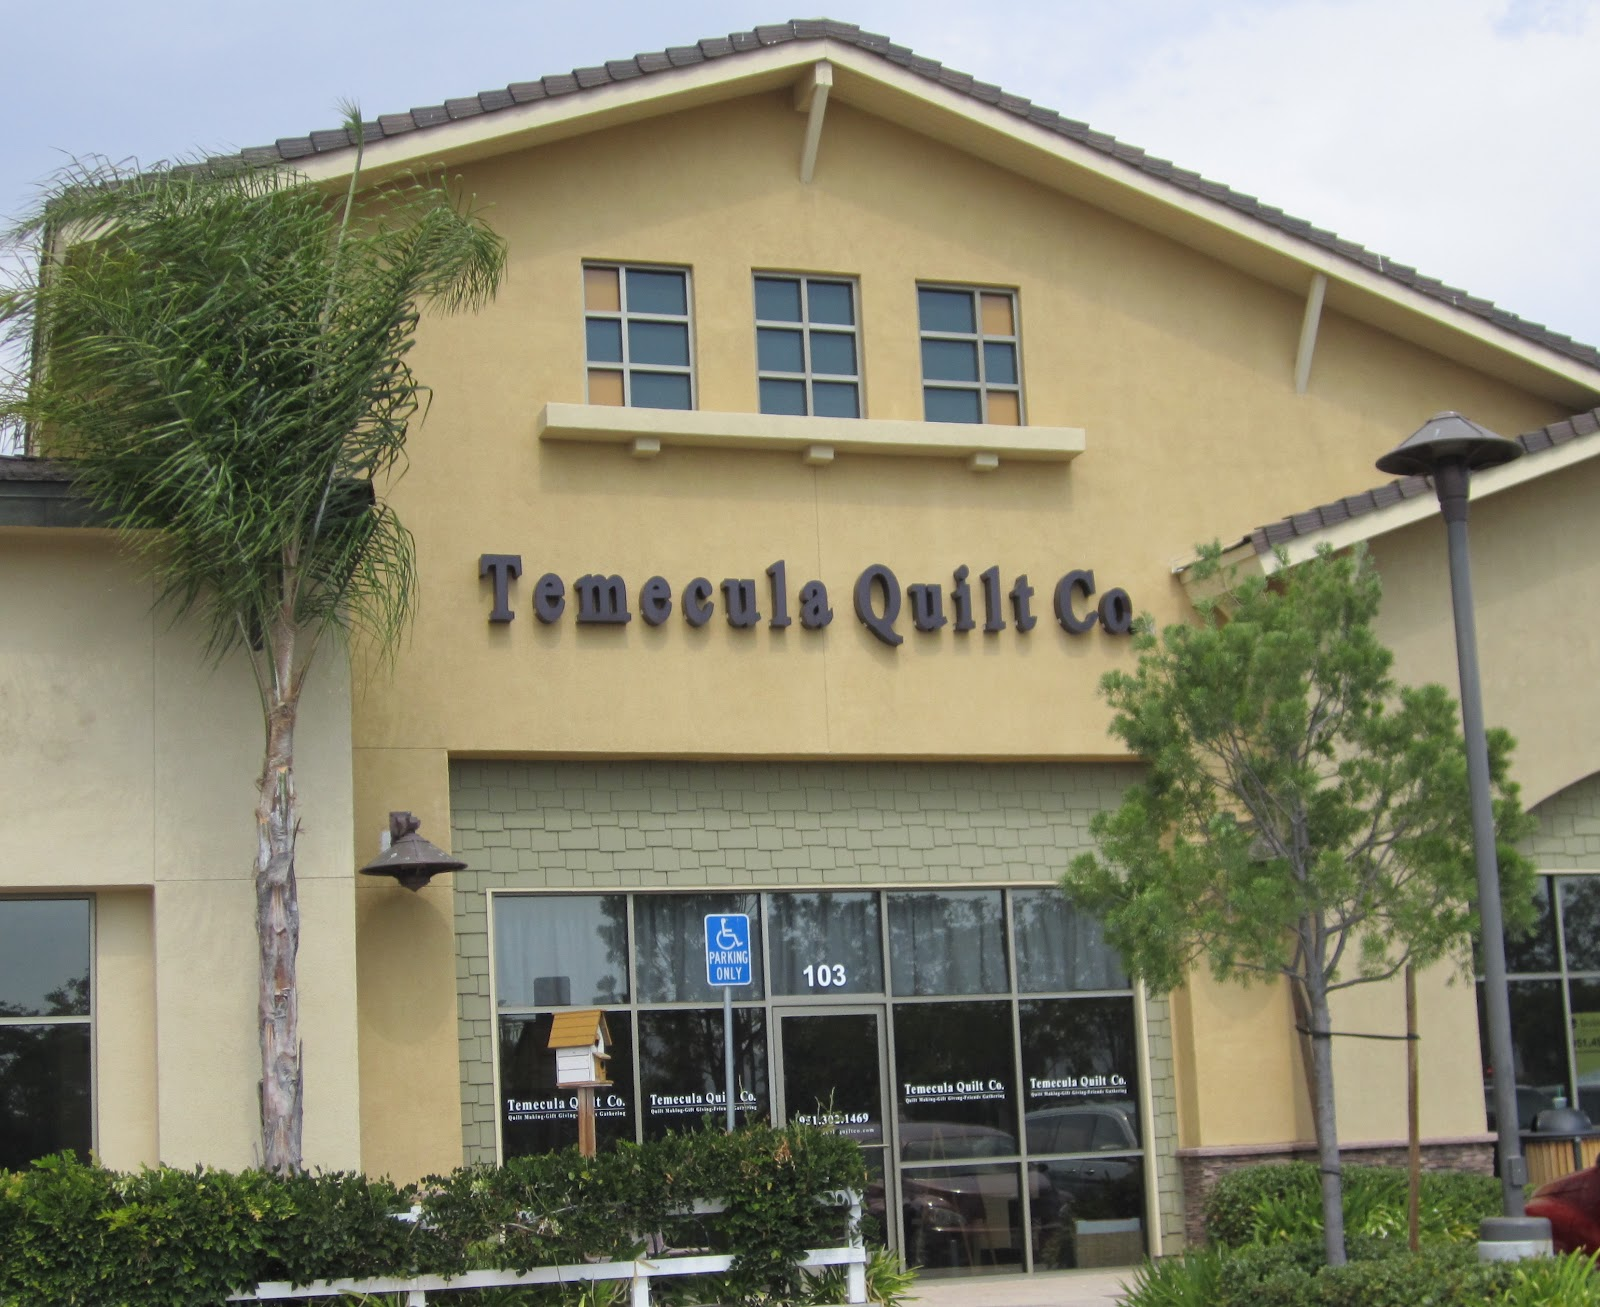 Cupcakes 'n Daisies: Temecula Quilt Co . . . . : temecula quilt company - Adamdwight.com